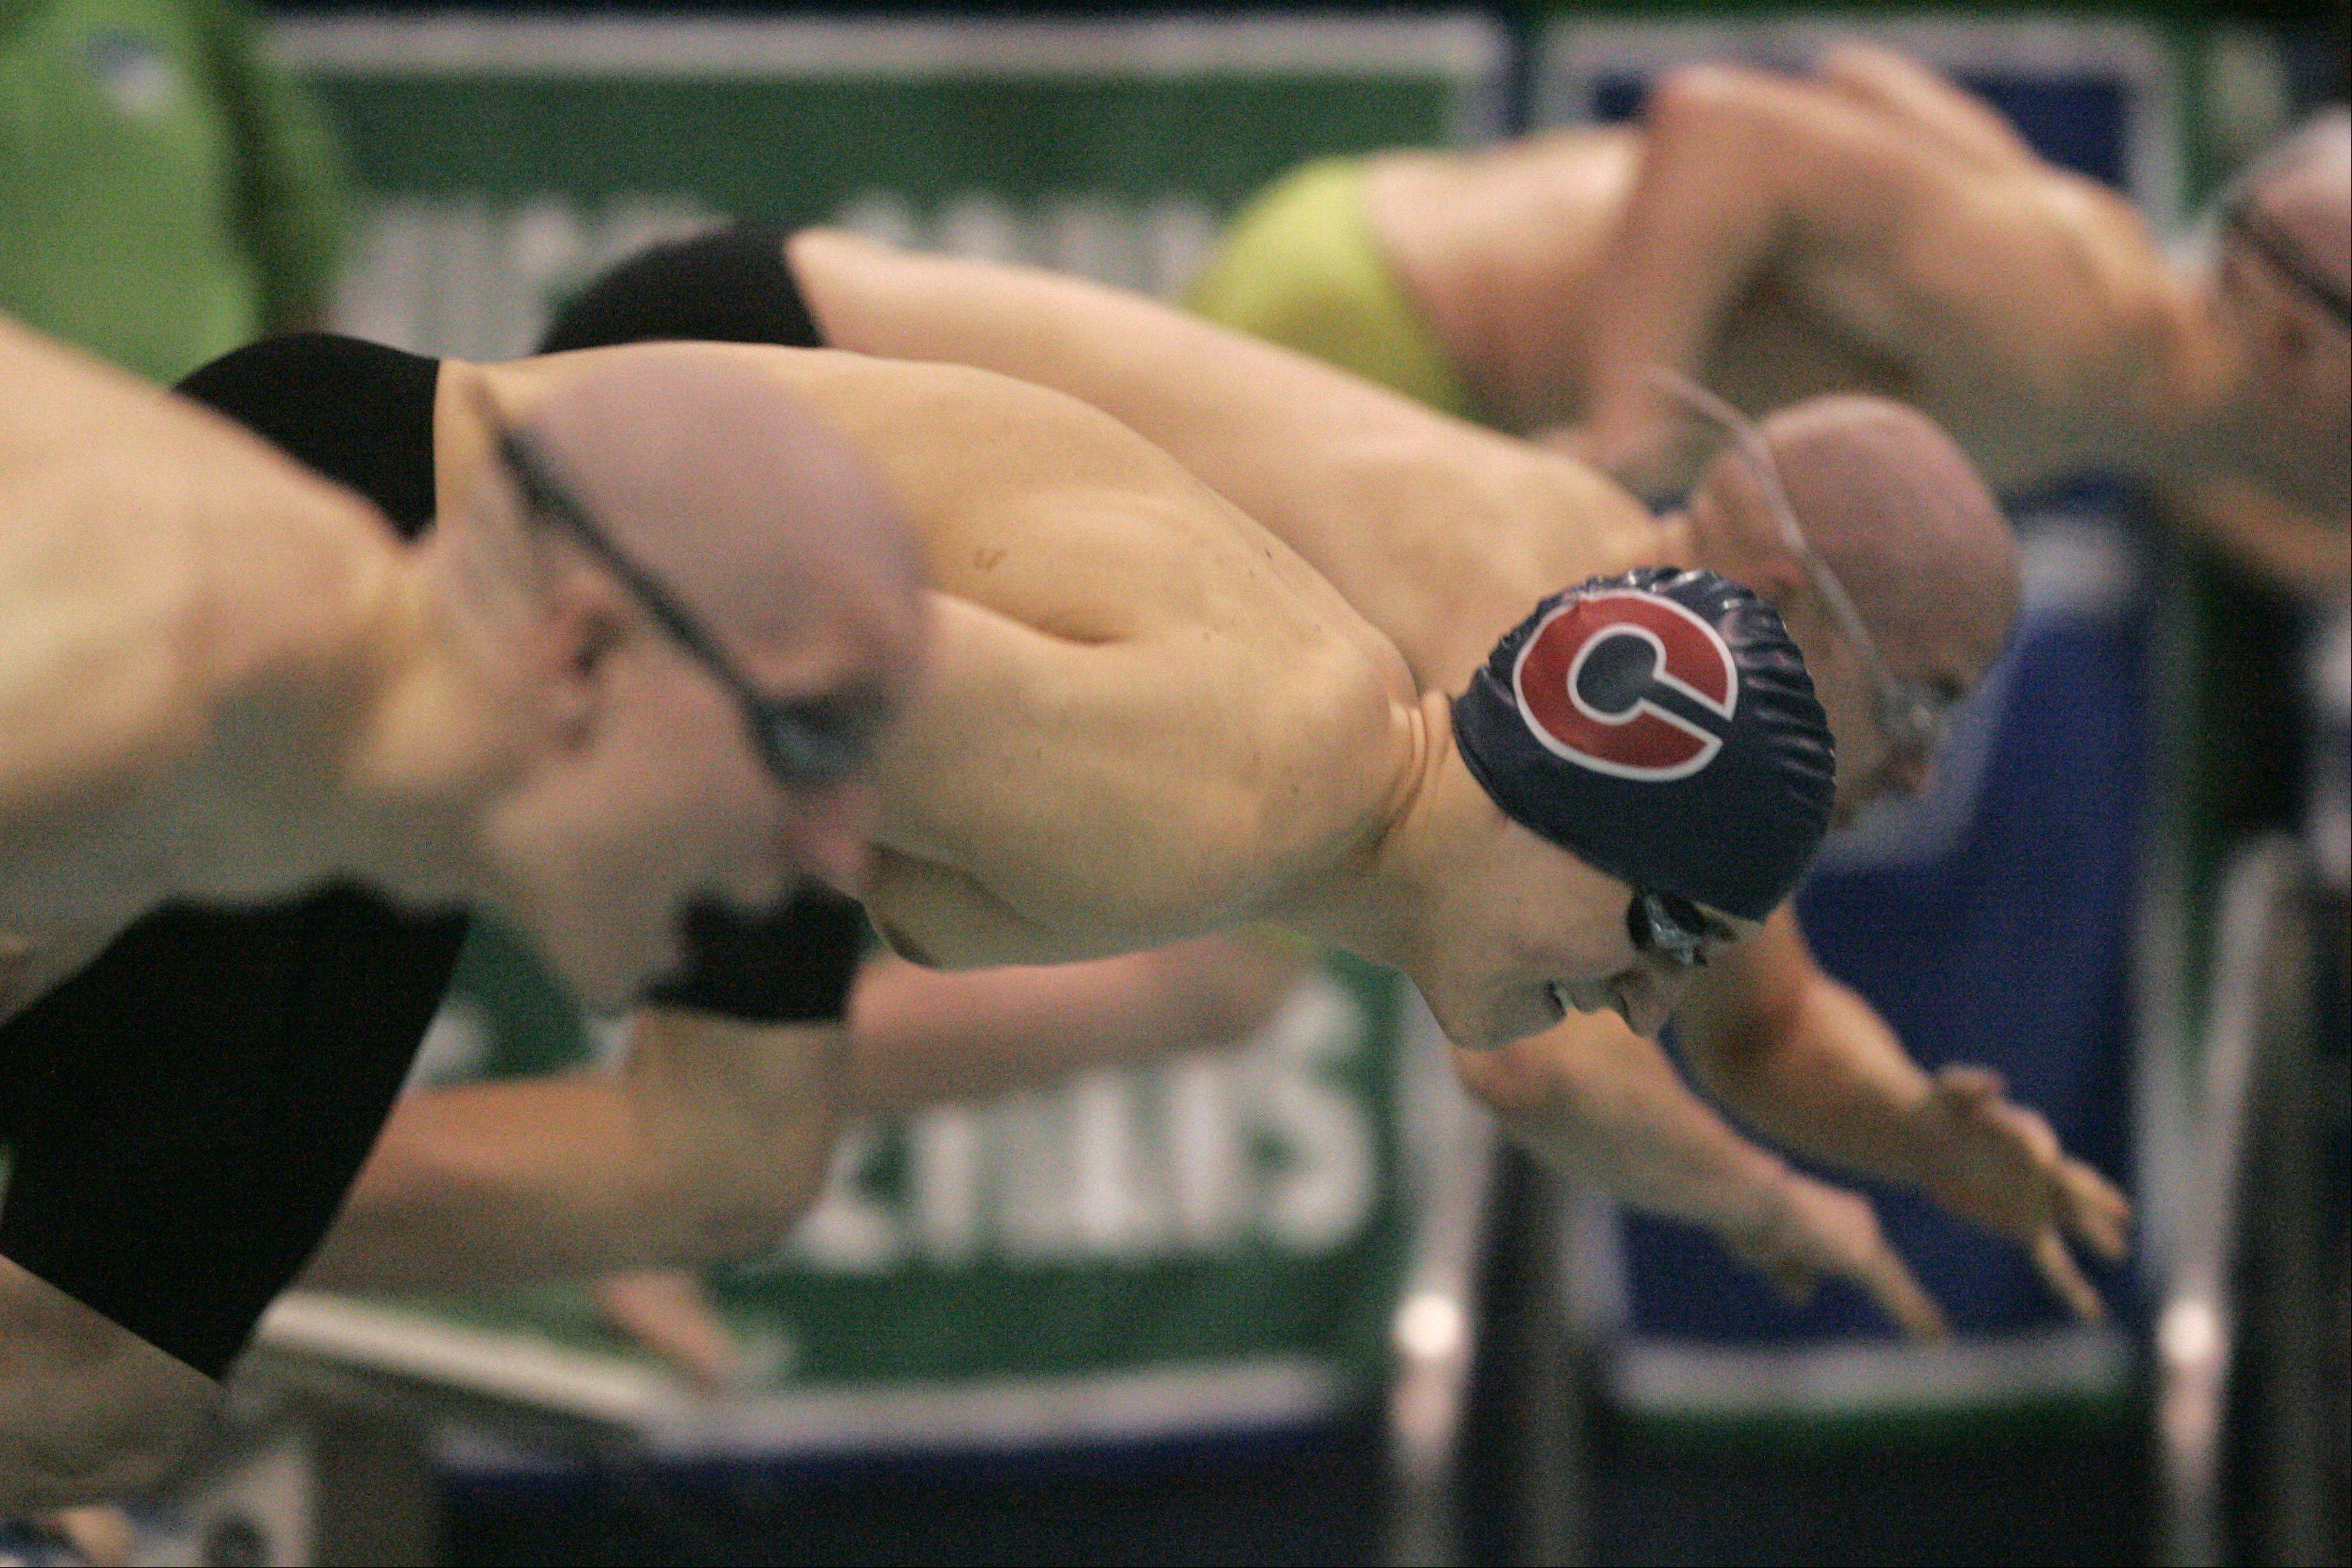 Alex Shozda of Conant launches off the blocks in the 100-yard freestyle during the boys swimming state meet prelimiinaries at New Trier High School on Friday.